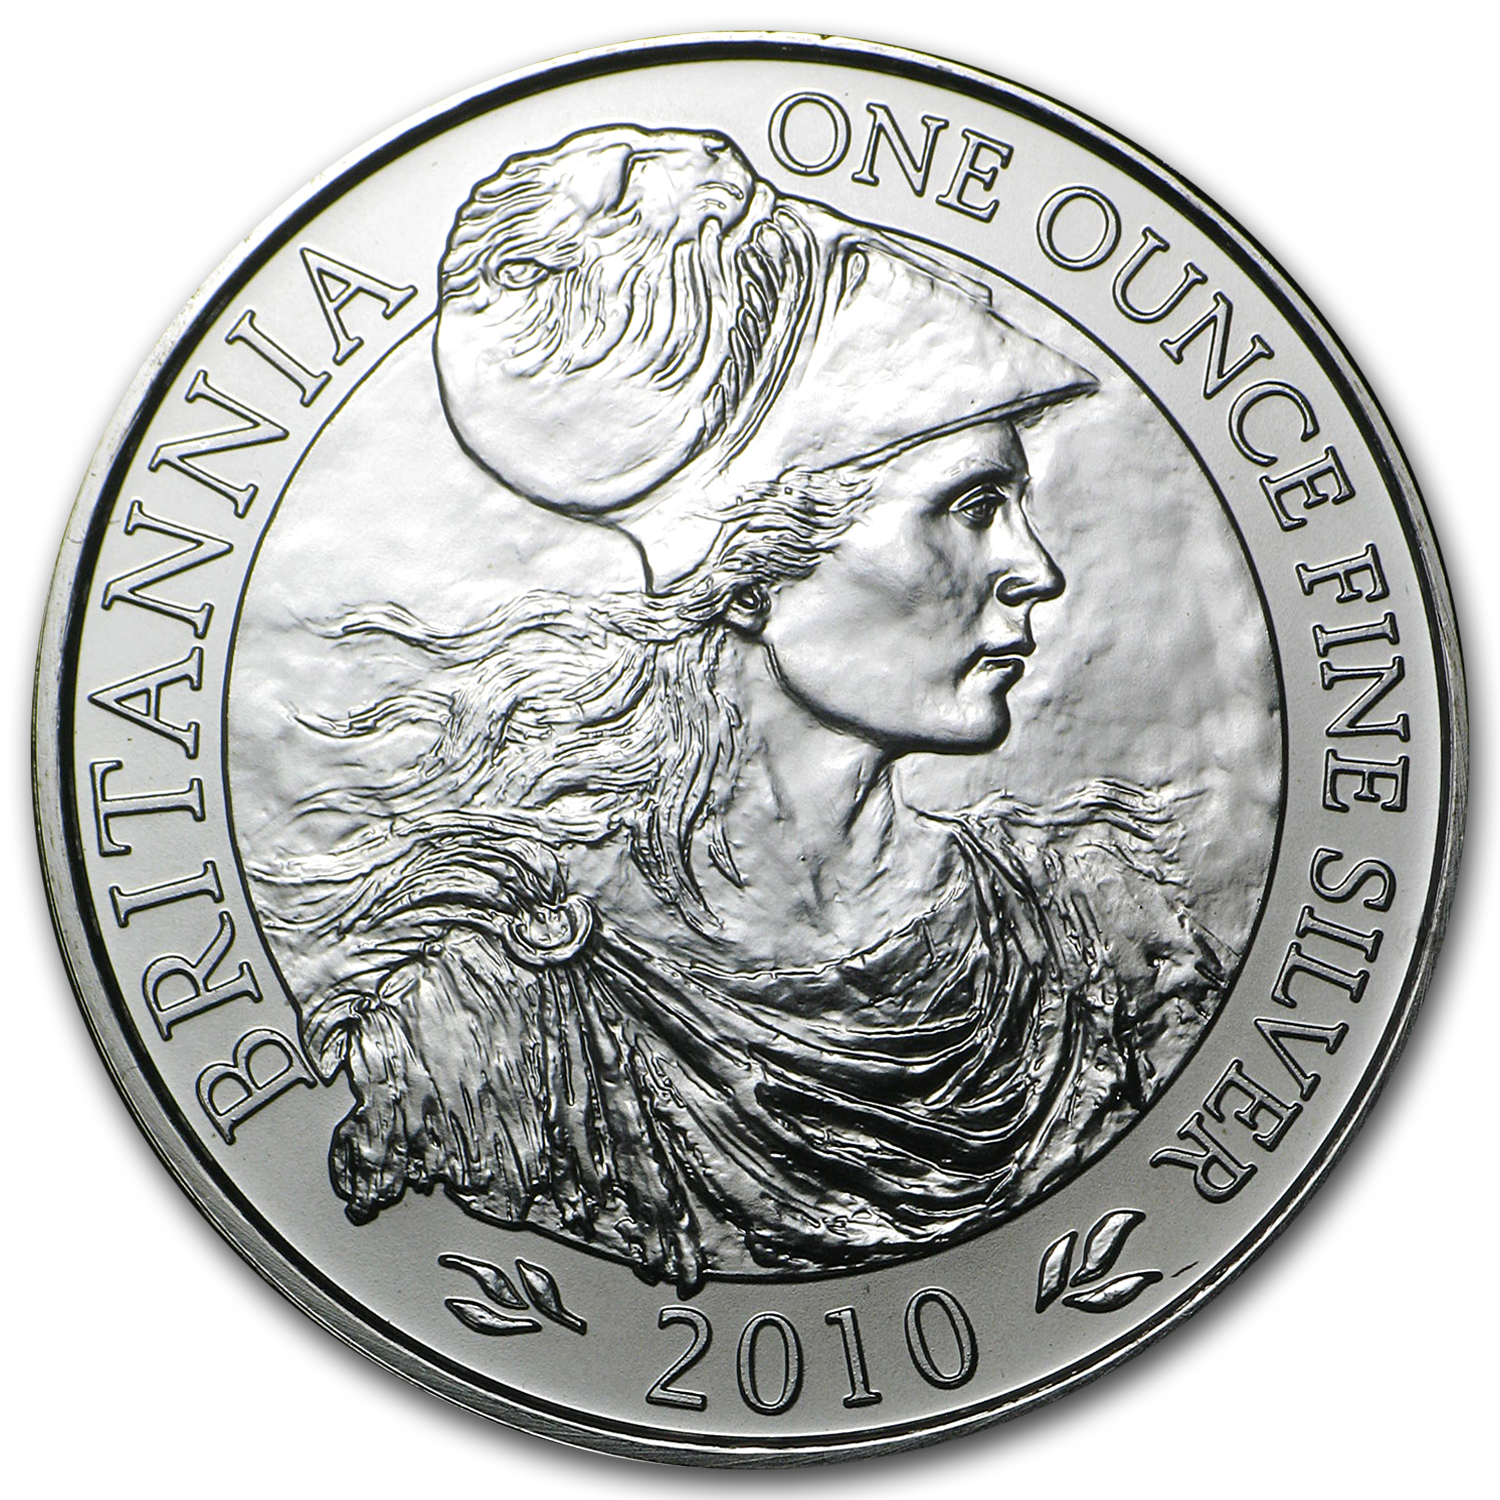 2010 Great Britain 1 oz Silver Britannia BU (Sealed Bag of 100)